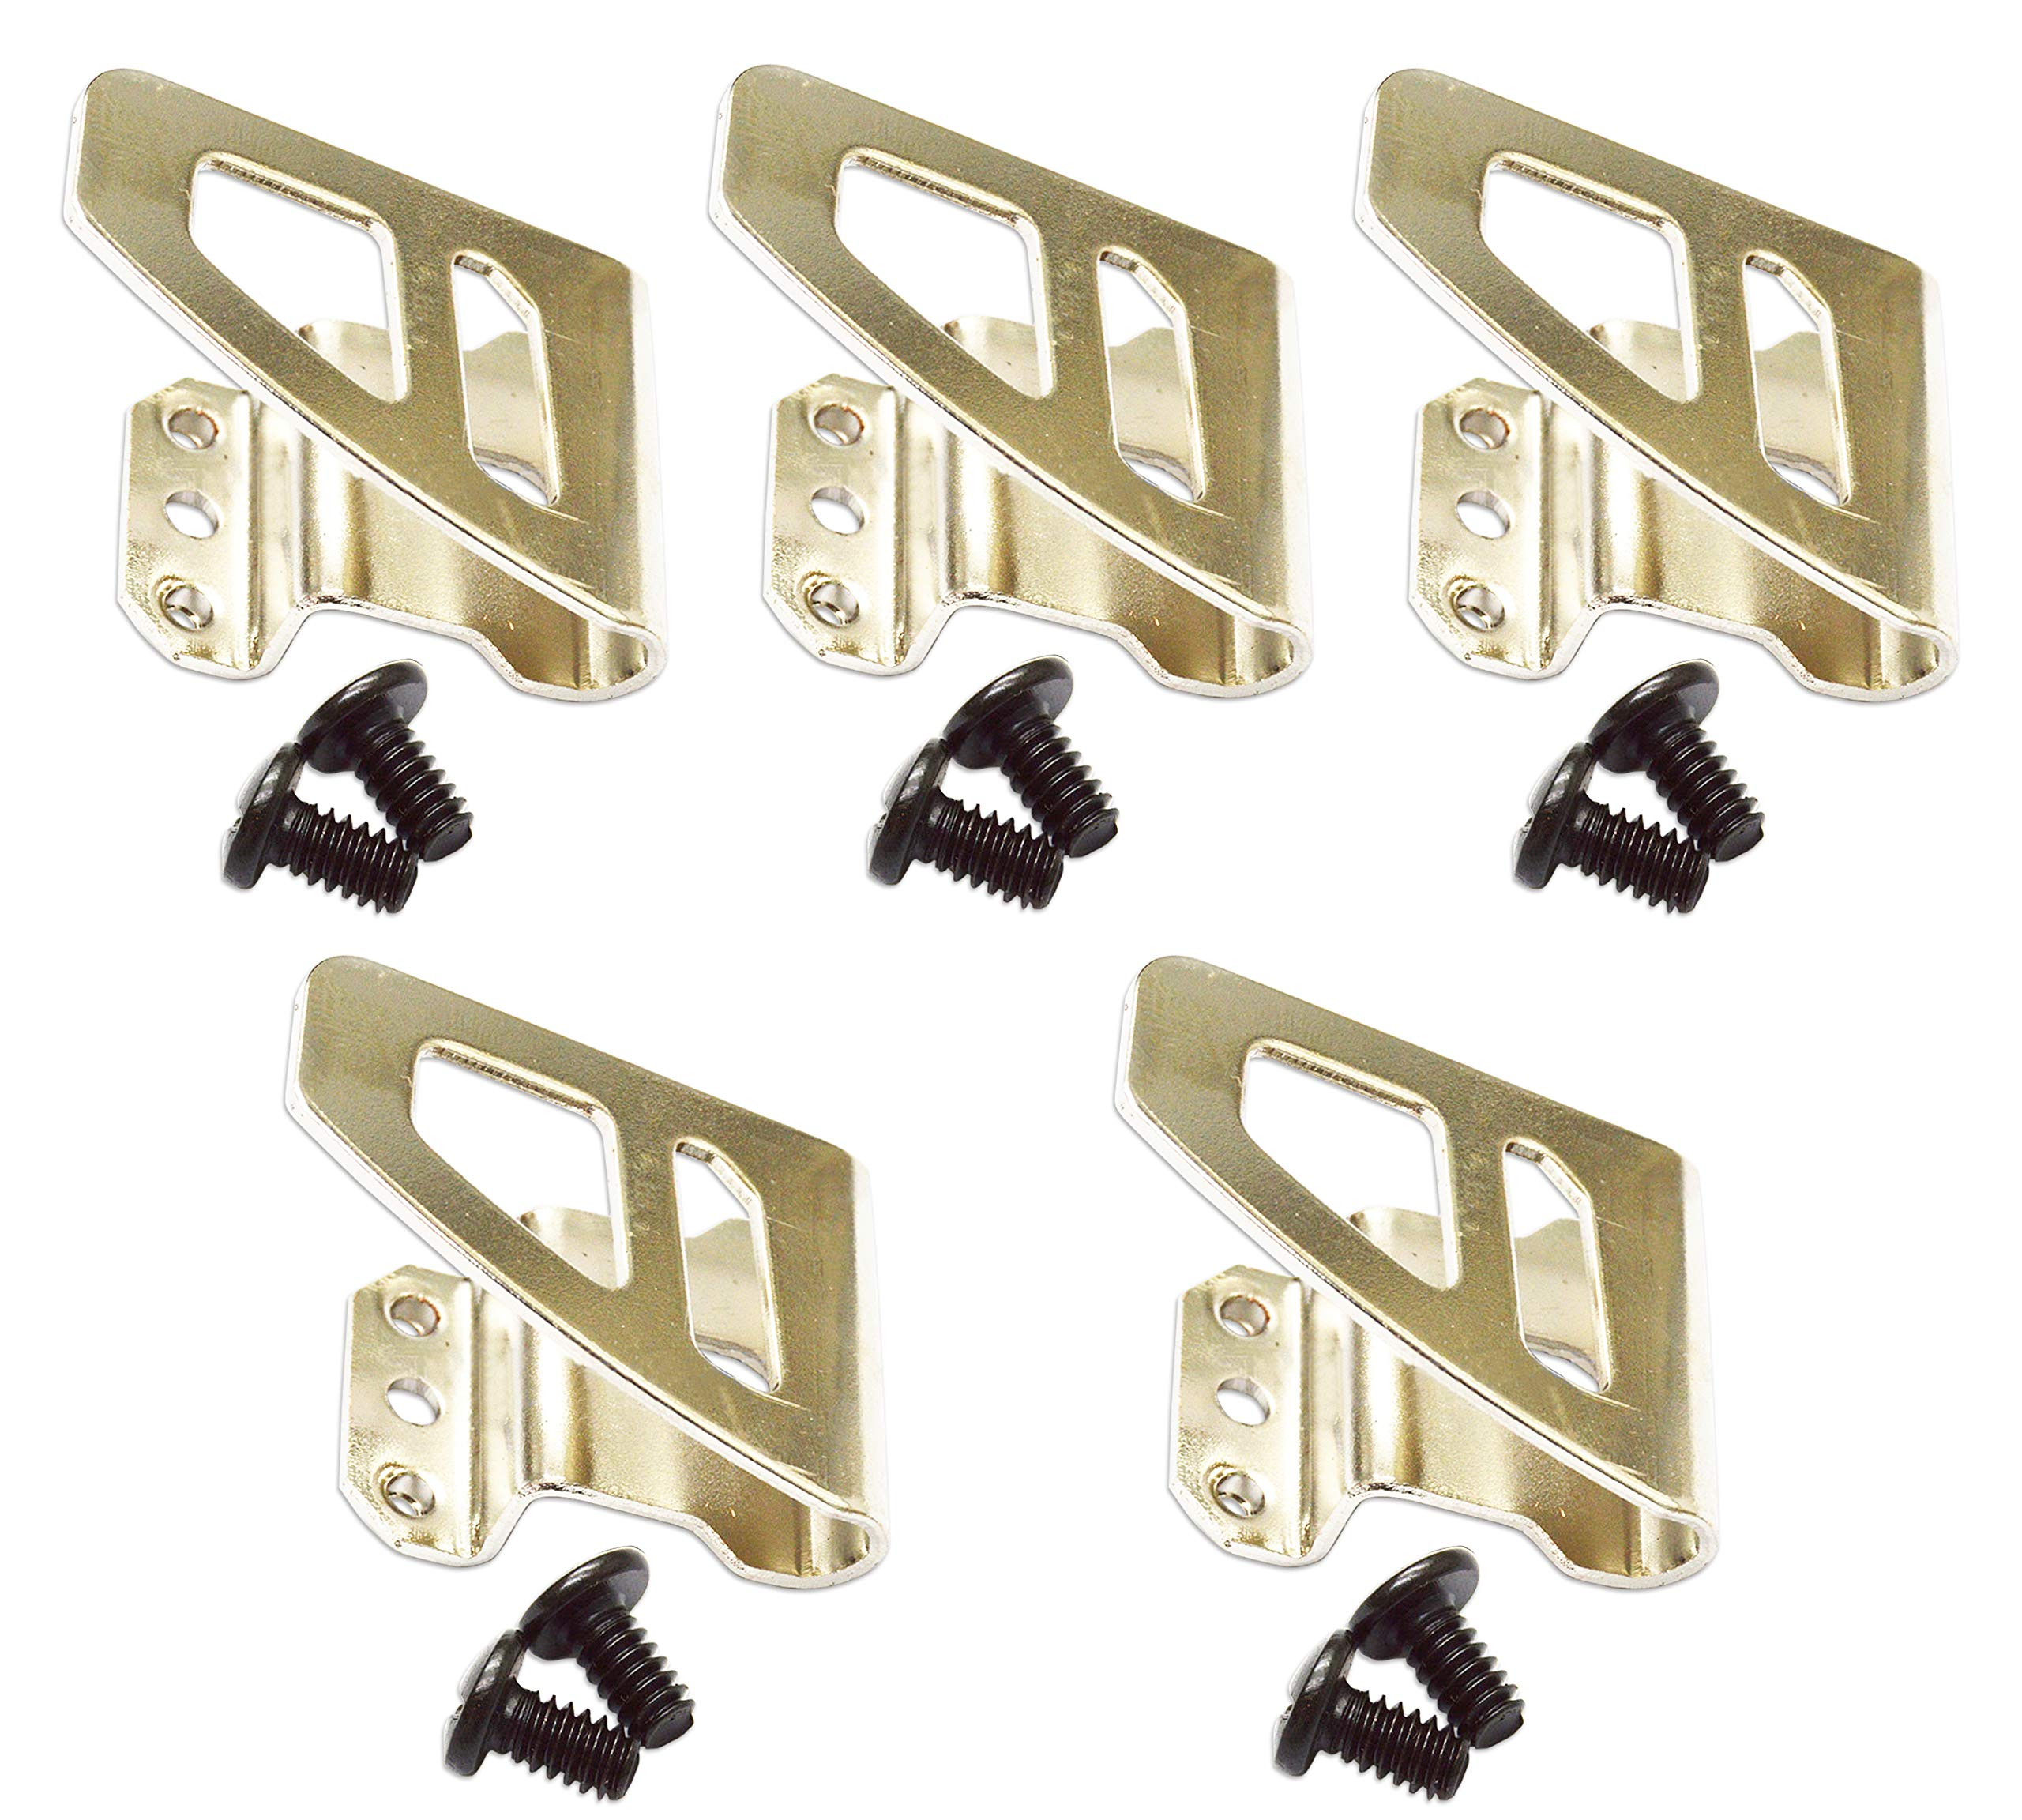 Noa Store 5x Belt clip Hook free Screw for Milwaukee M18 FUEL Impact Driver Hammer Drill